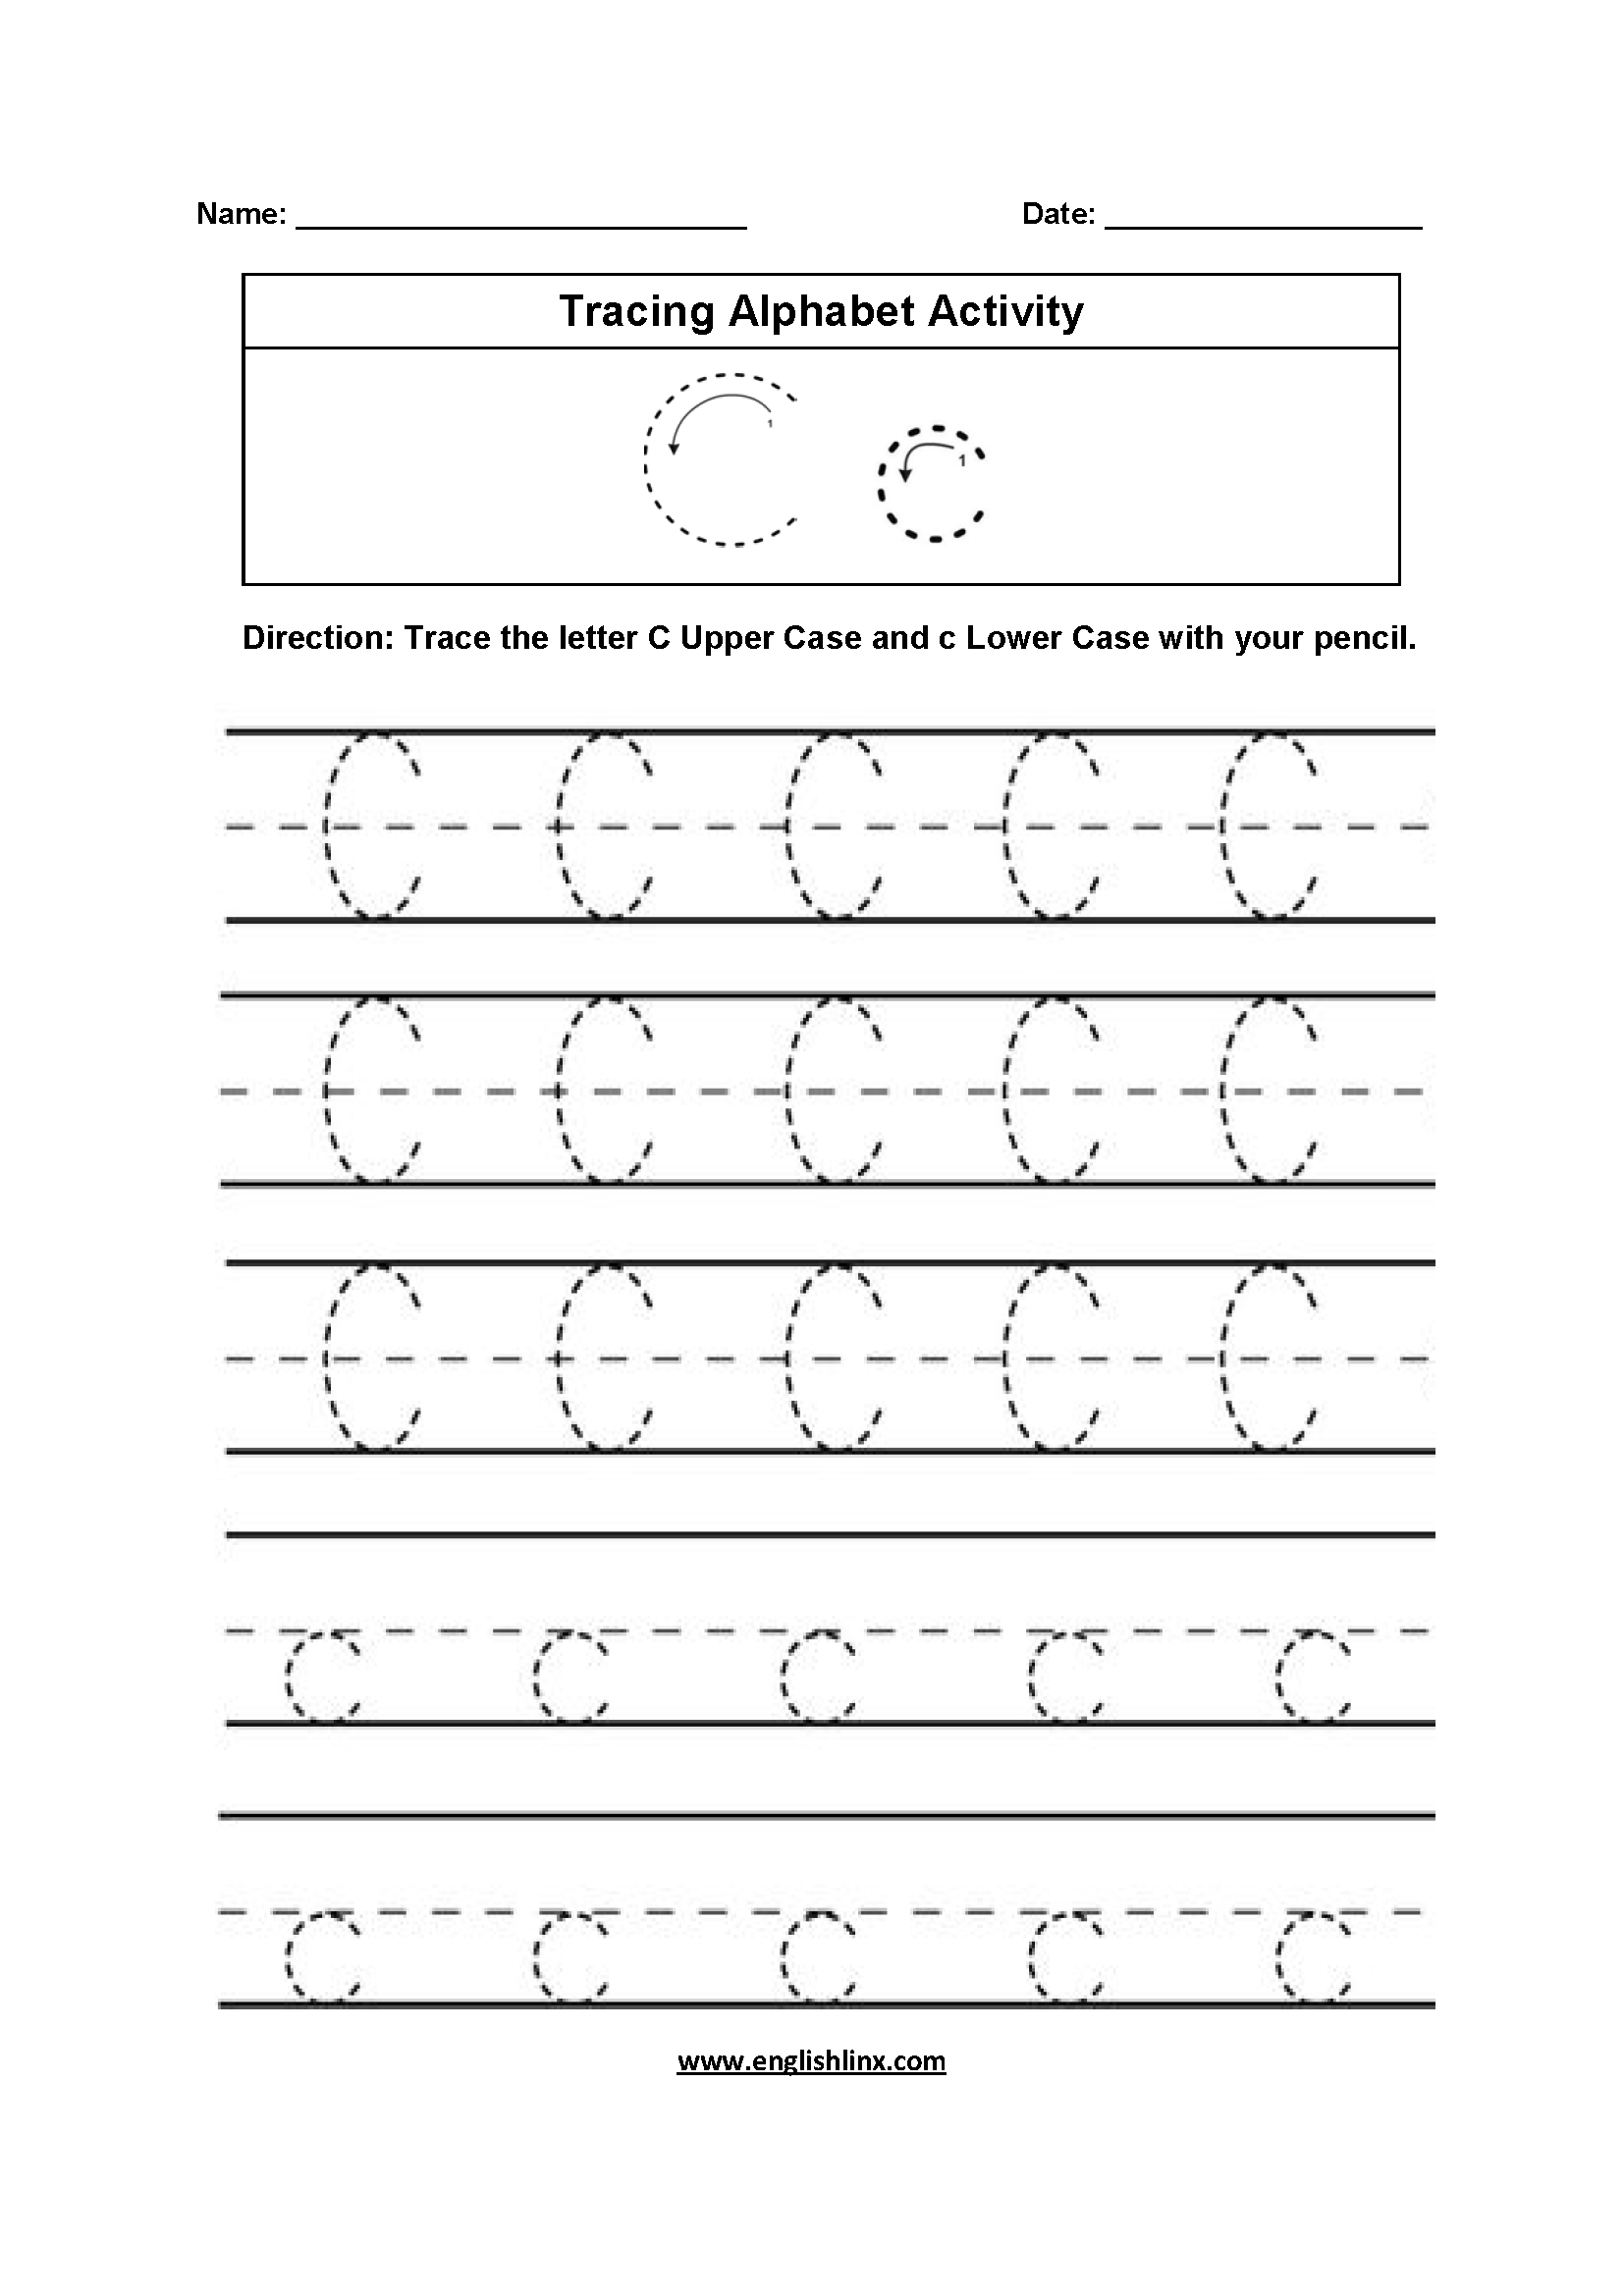 Alphabet Worksheets   Tracing Alphabet Worksheets pertaining to Worksheets With Tracing Letters